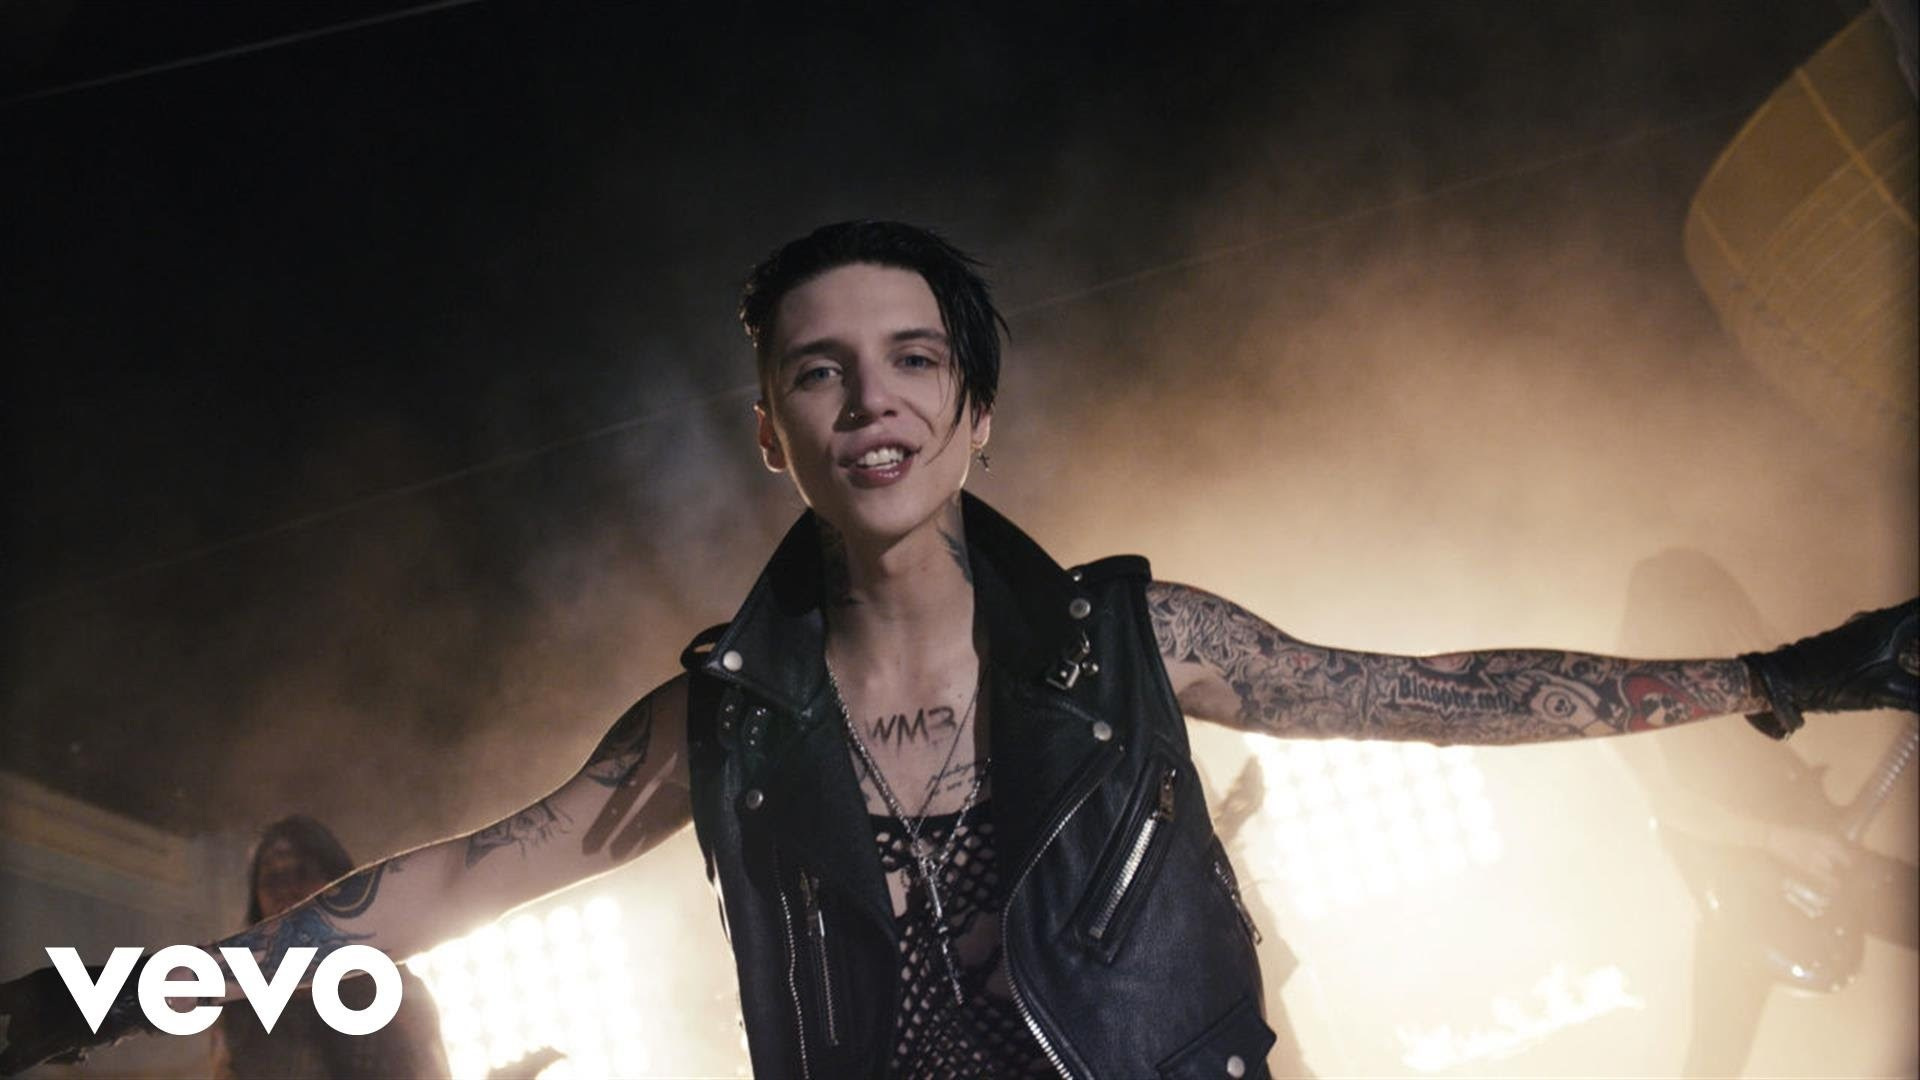 black veil brides wallpaper 1920x1080